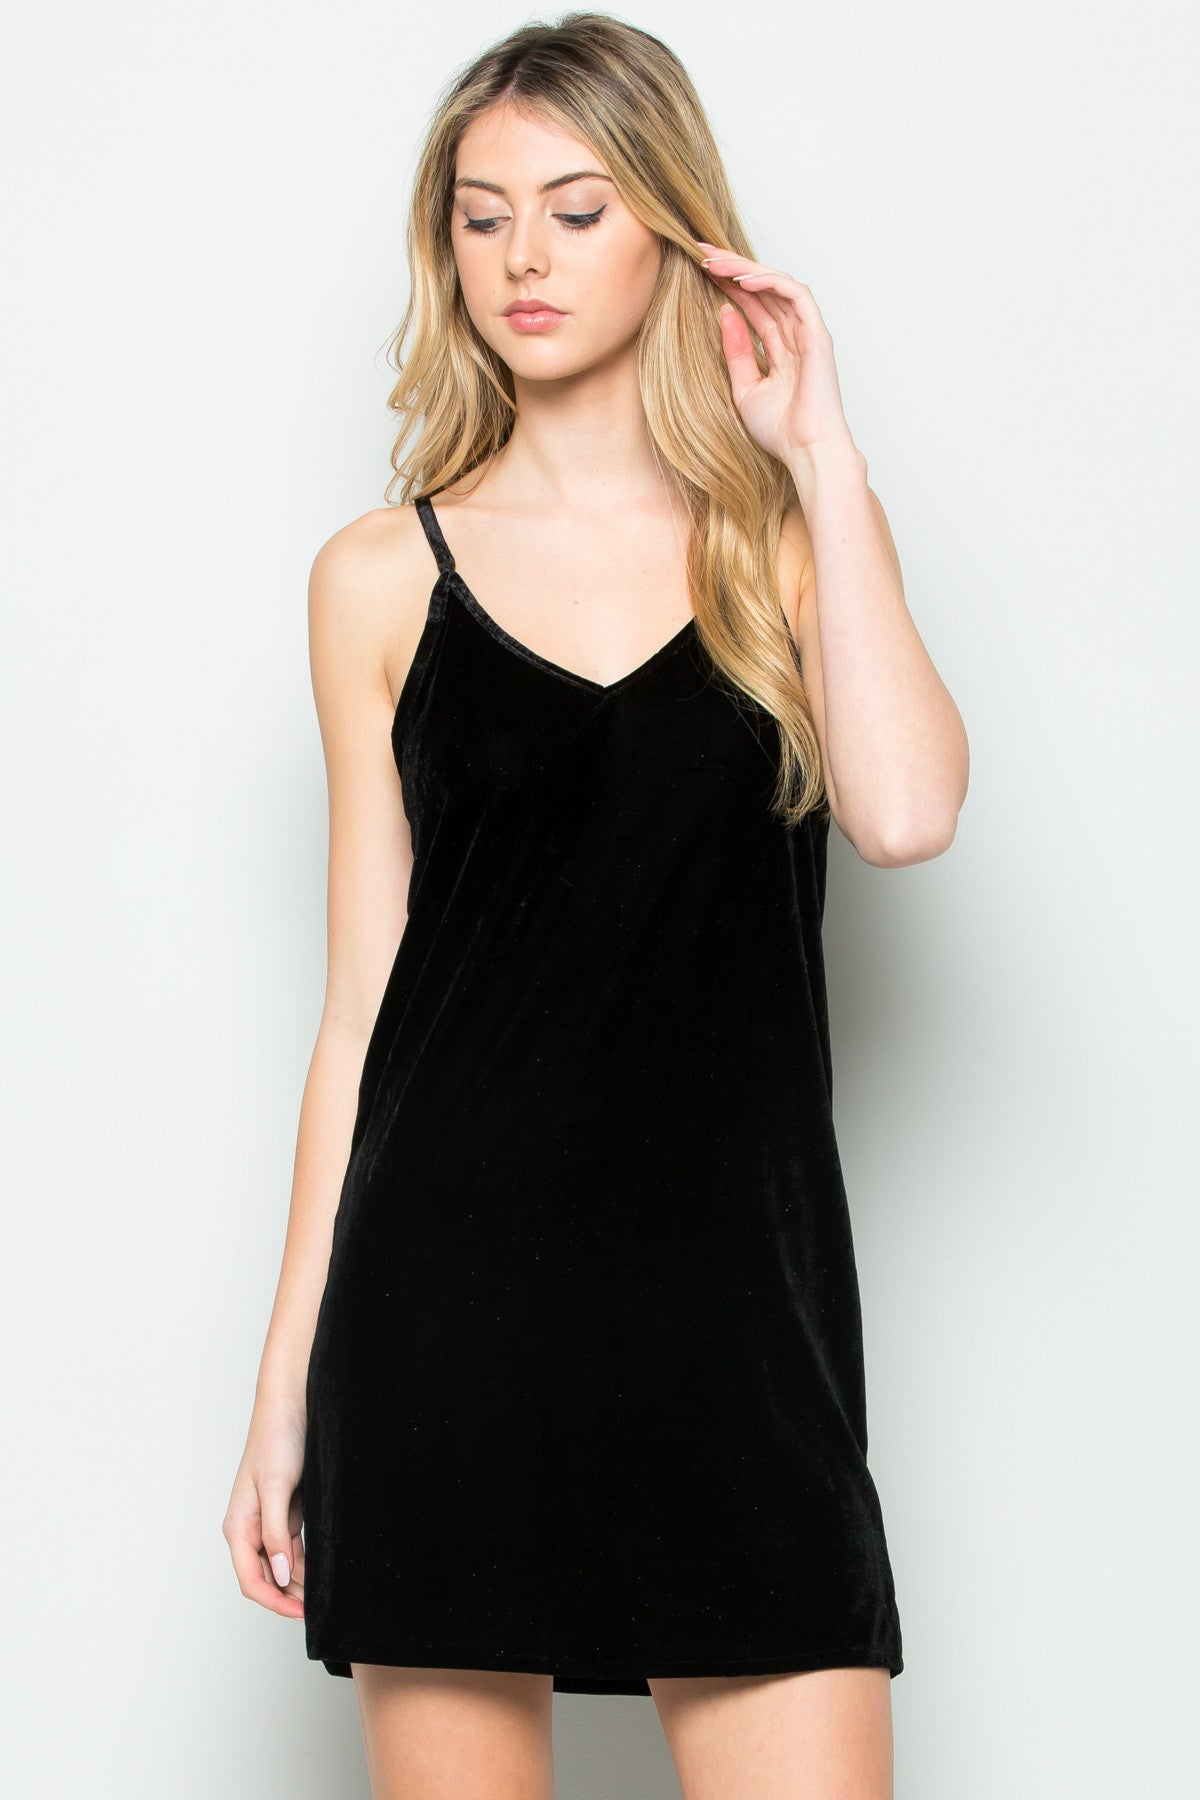 Open Back Crush Velvet Cami Slip Dress in Black - Dresses - My Yuccie - 1